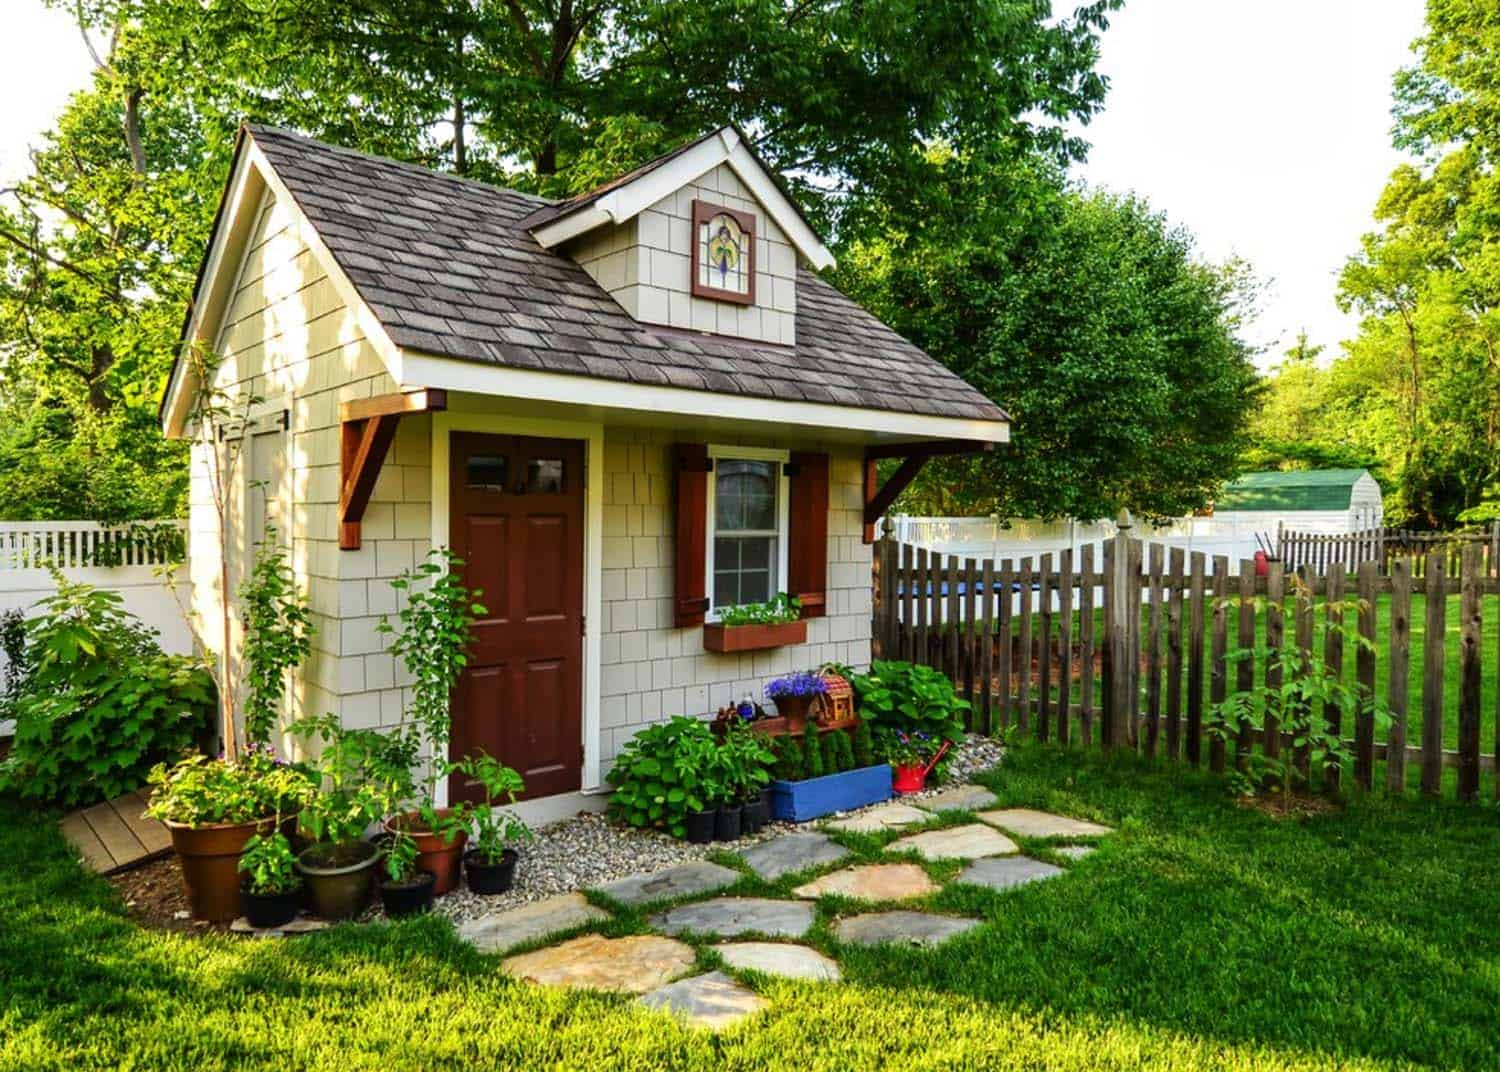 40 simply amazing garden shed ideas